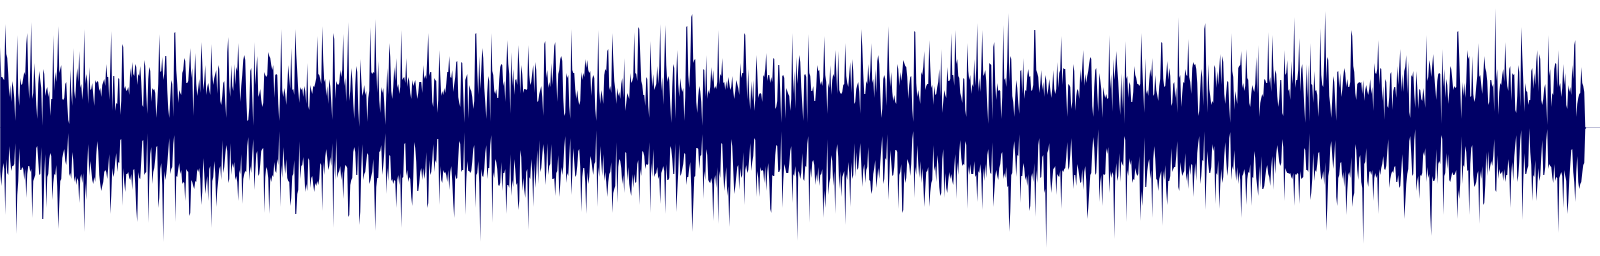 waveform of track #131471